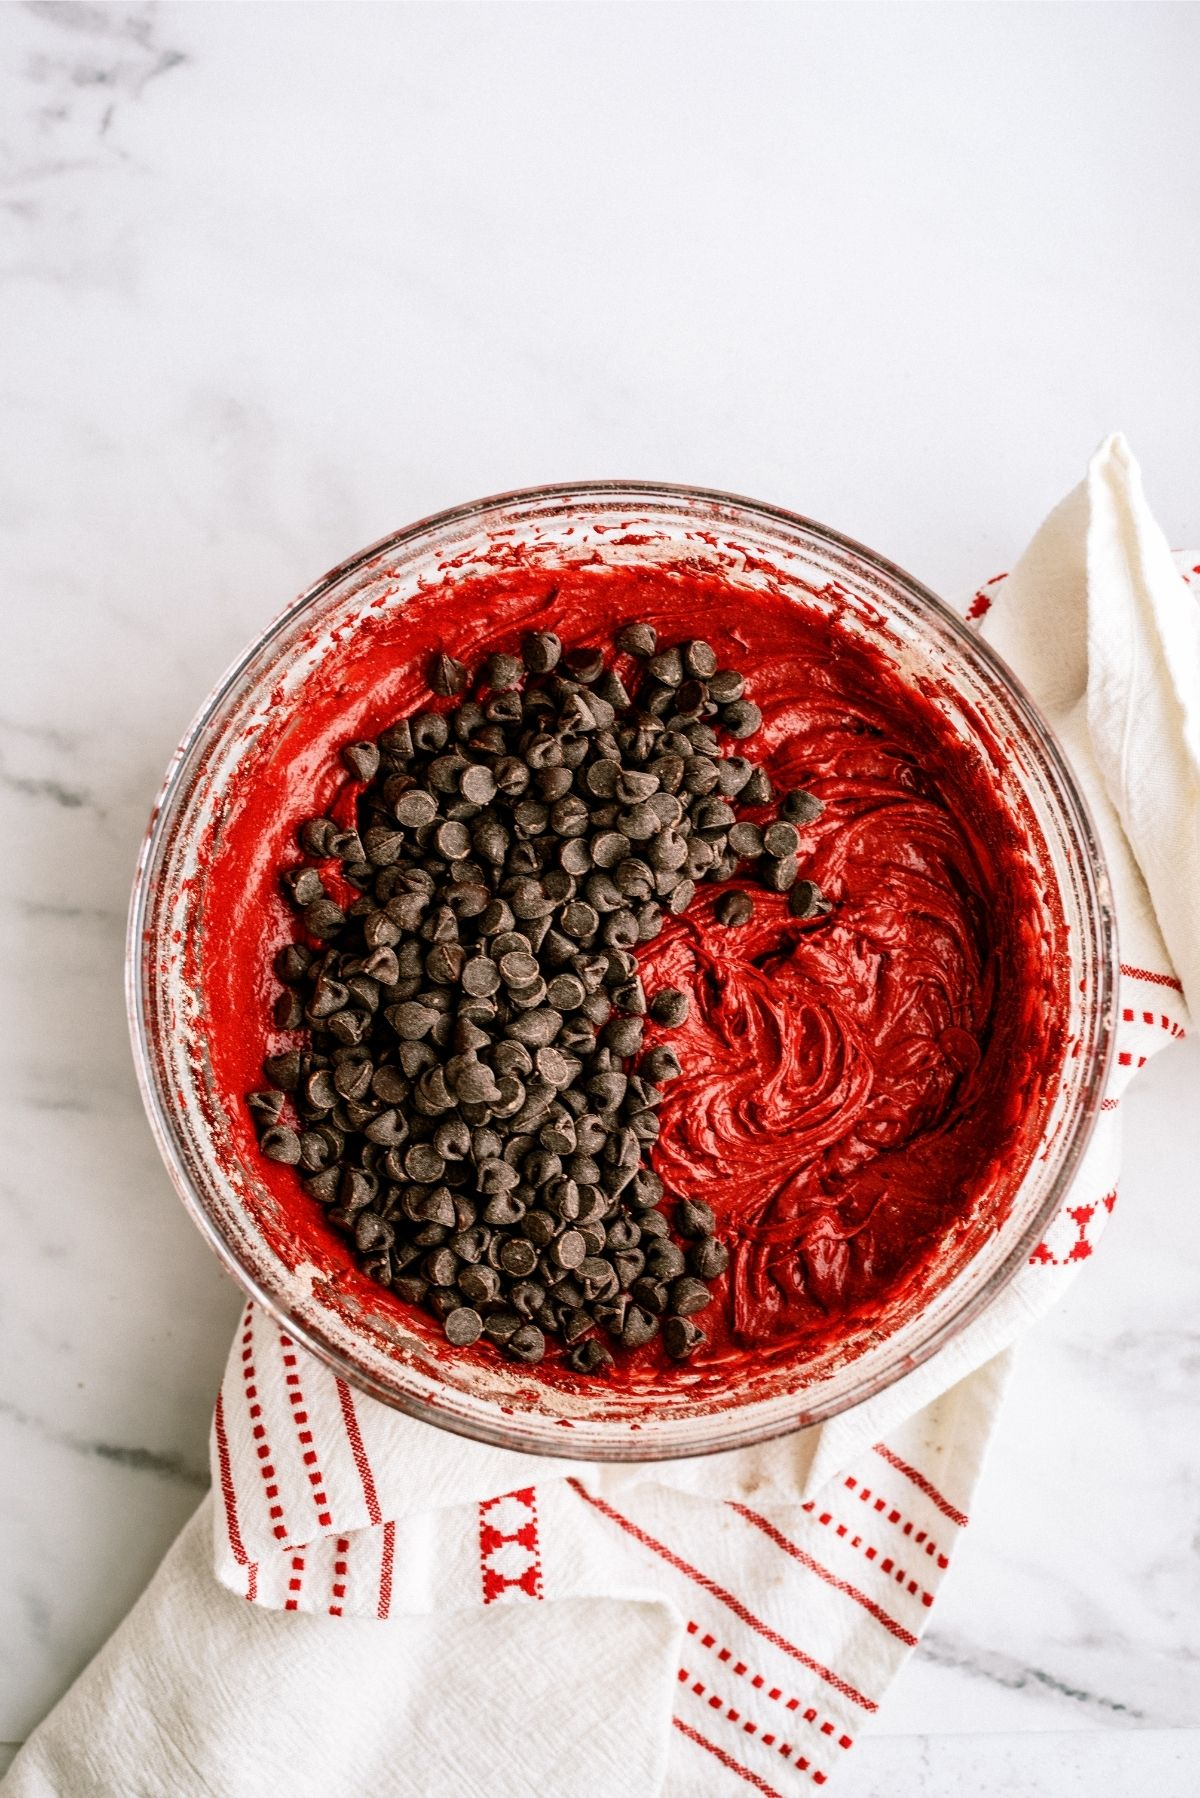 Red Velvet Brownie Batter with Chocolate Chips